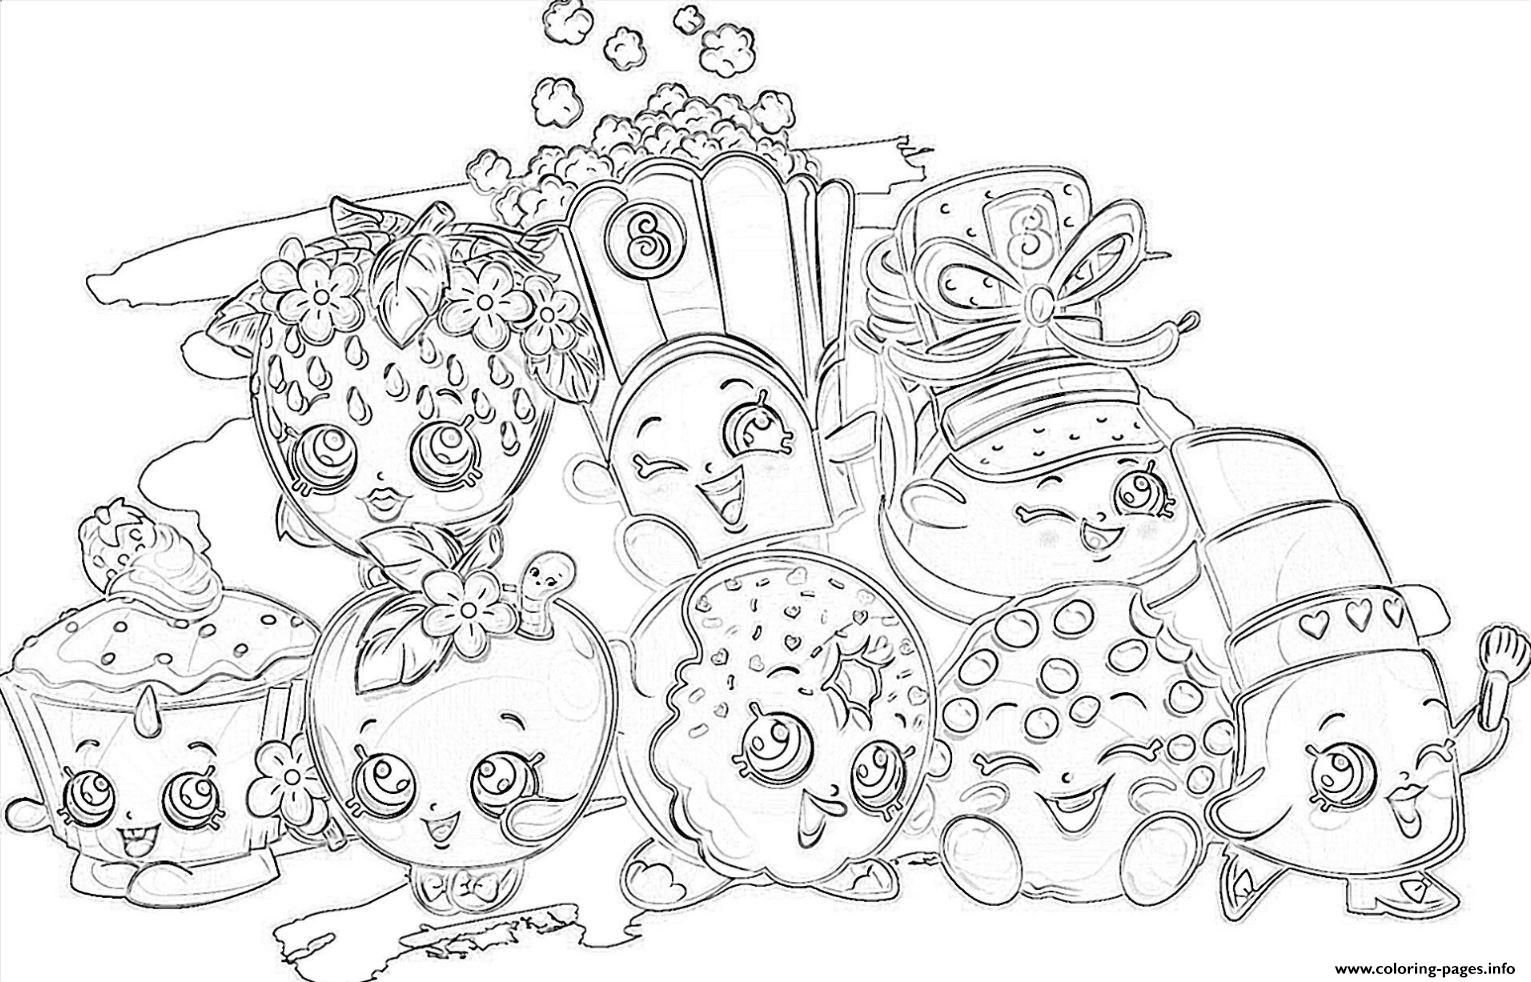 Print Shopkins All The Family Coloring Pages Family Coloring